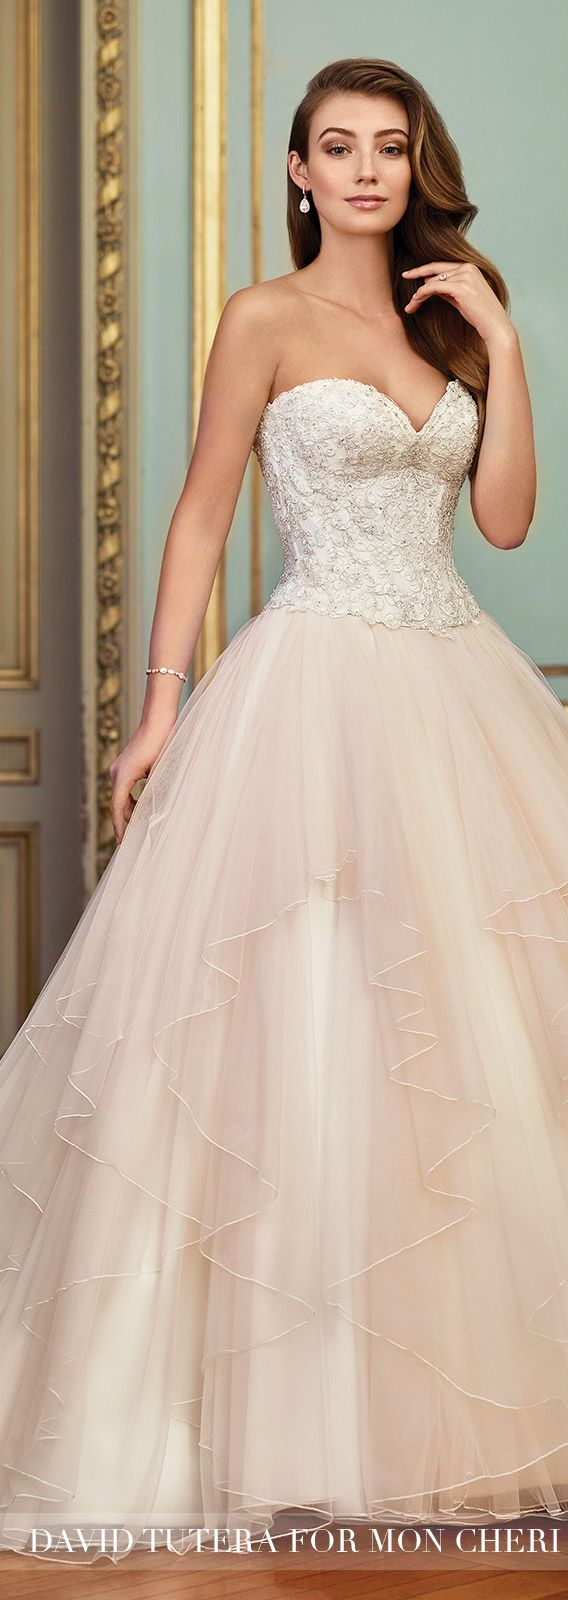 Wedding Dress by David Tutera for Mon Cheri 2017 Bridal Collection | Style No. » 117266 Aurinda